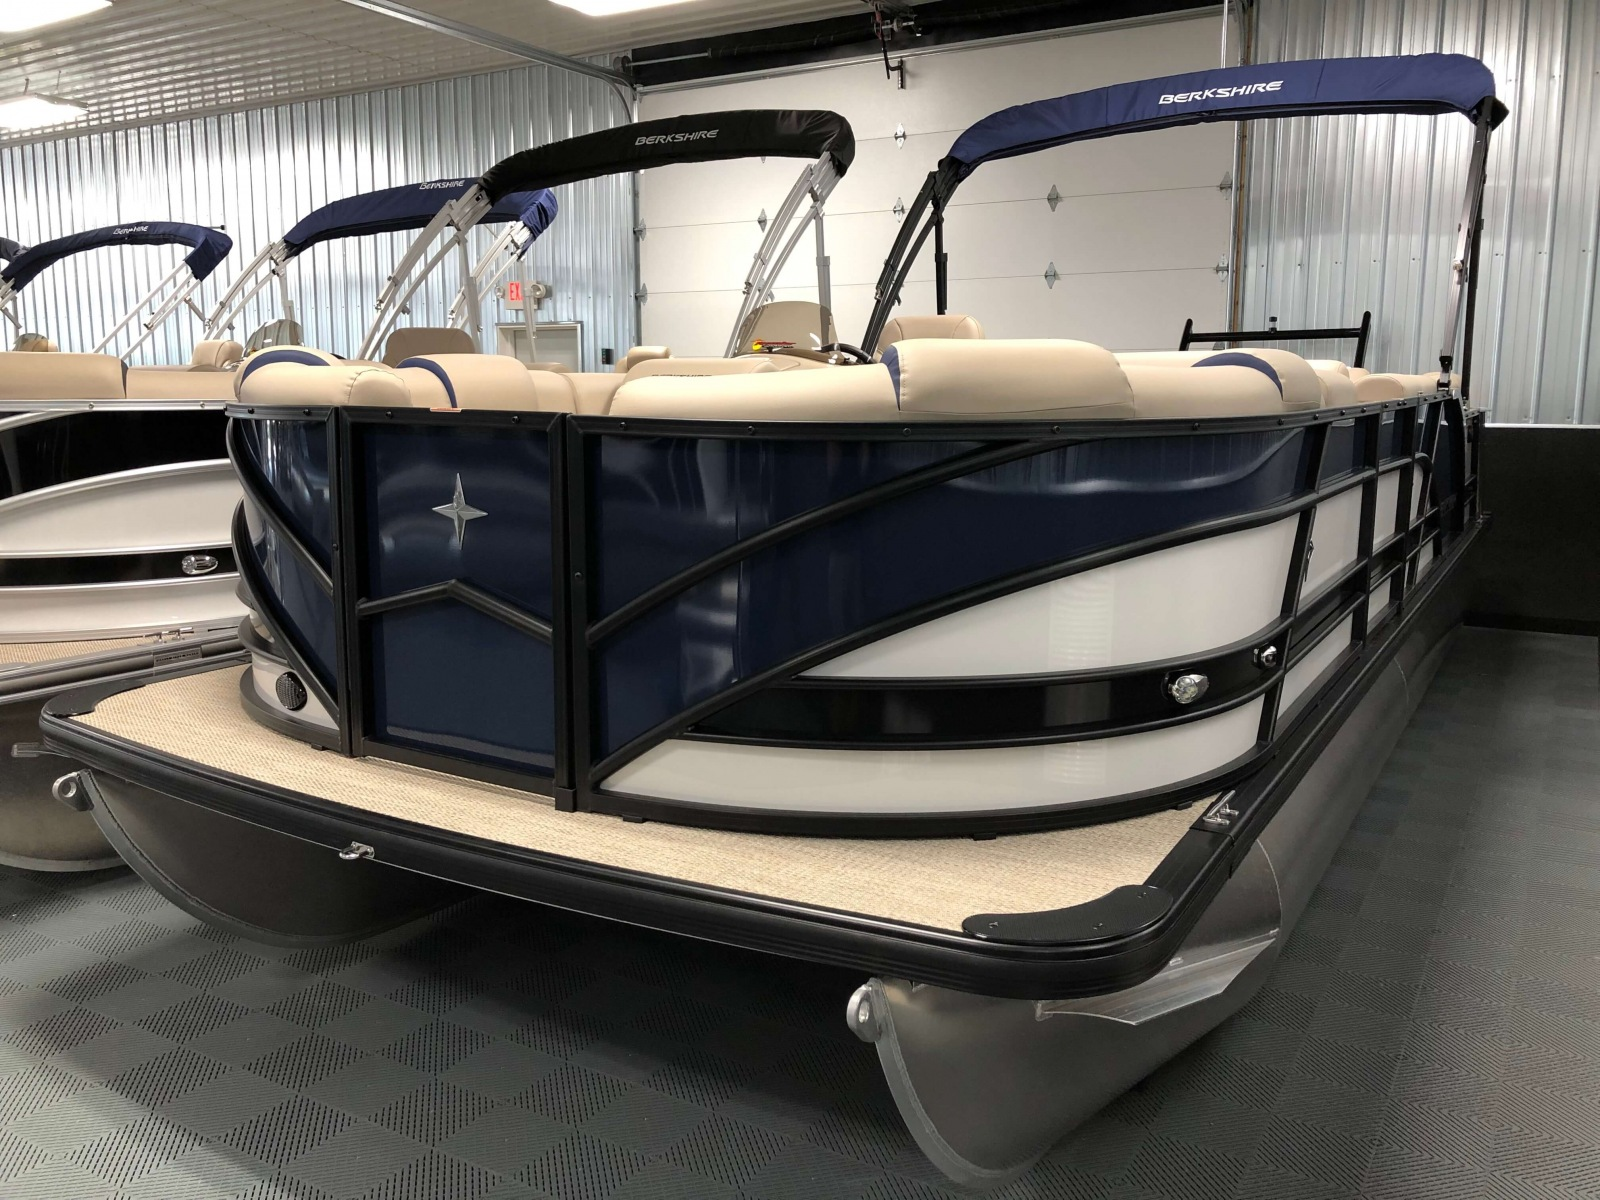 Tri-Colored Exterior of a 2019 Berkshire 23SB2 STS Pontoon